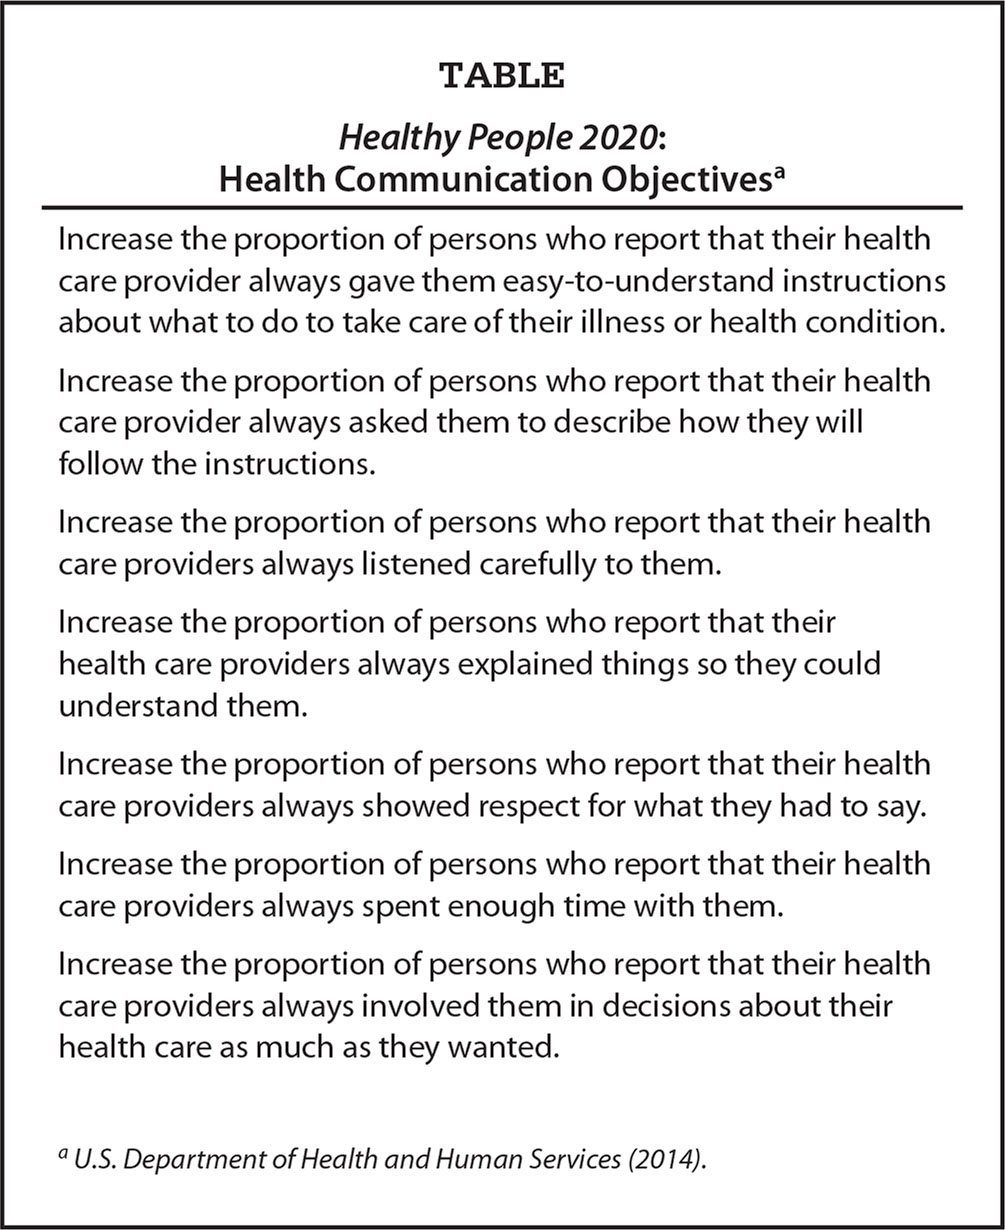 Healthy People 2020: Health Communication Objectivesa